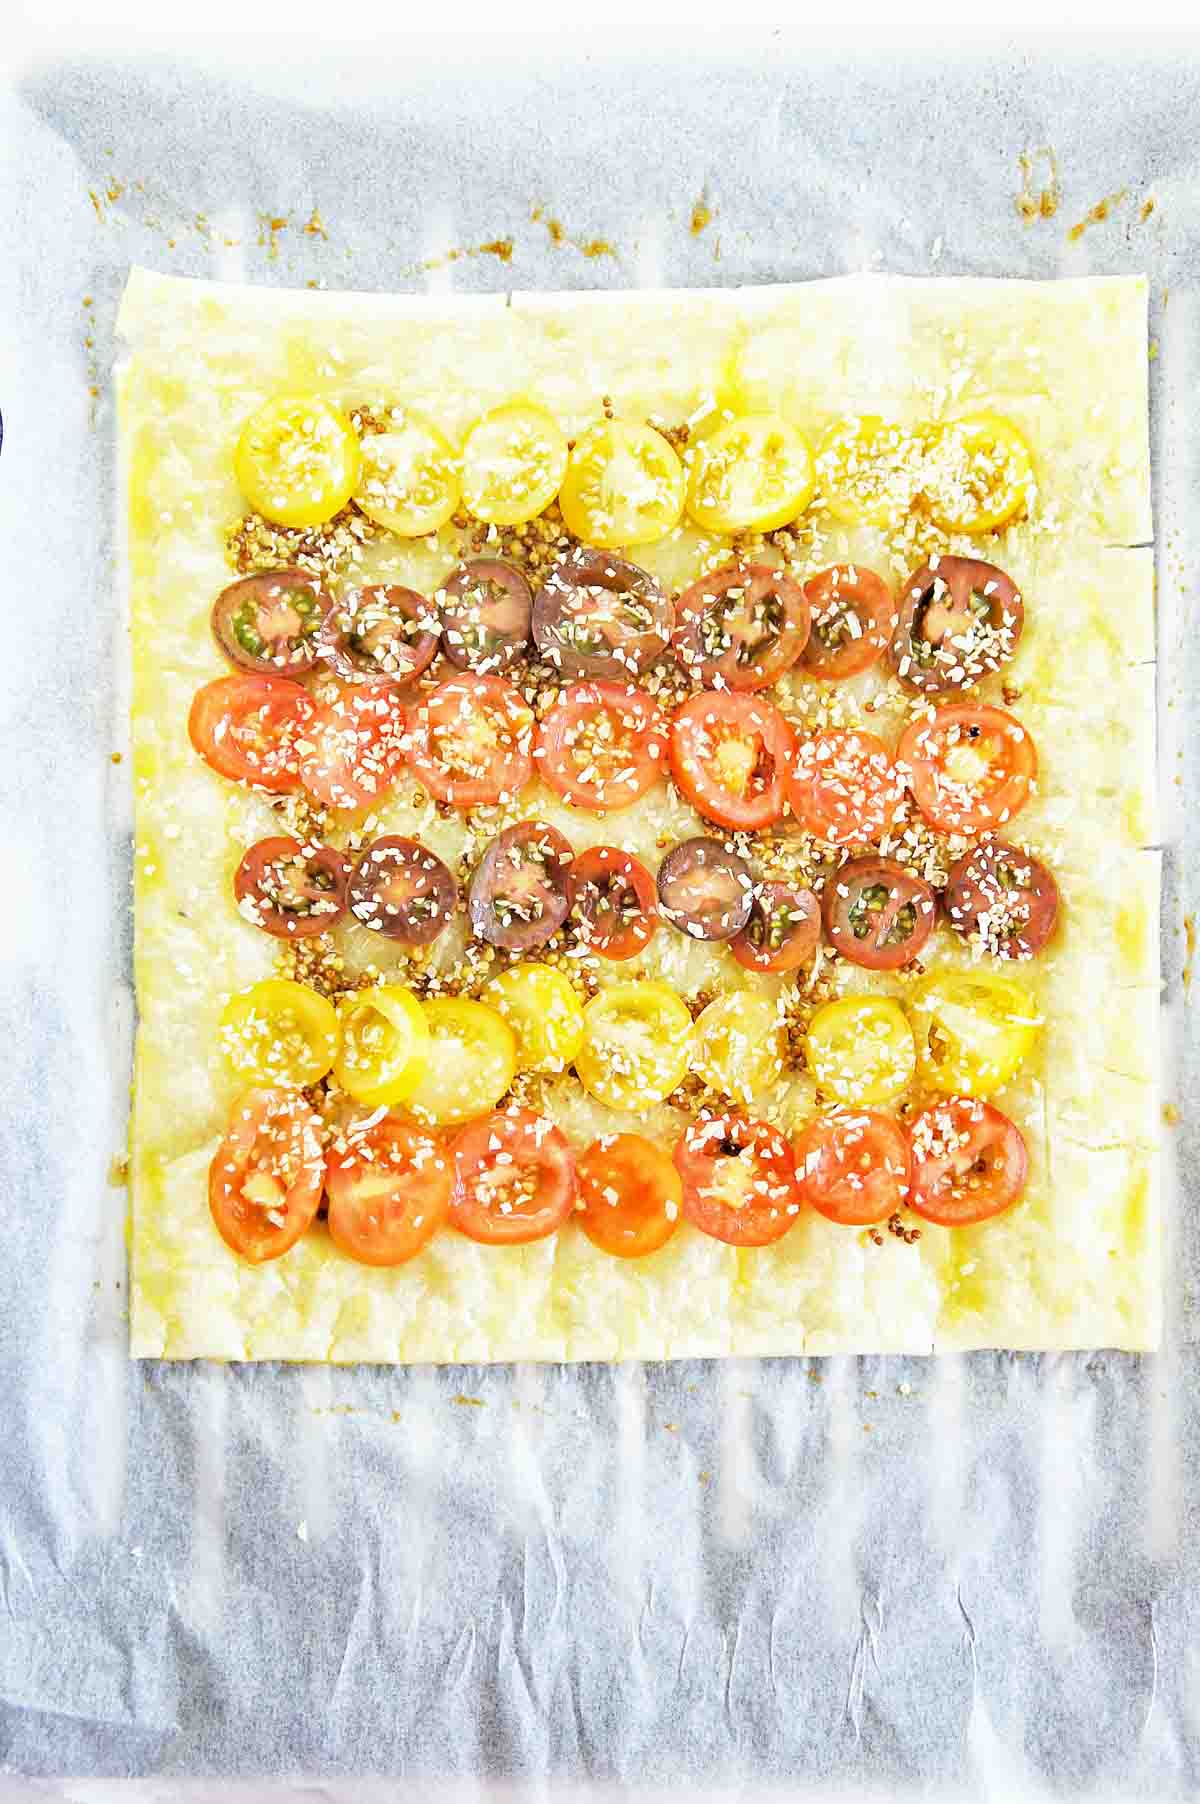 Tomato tart before being put in the oven